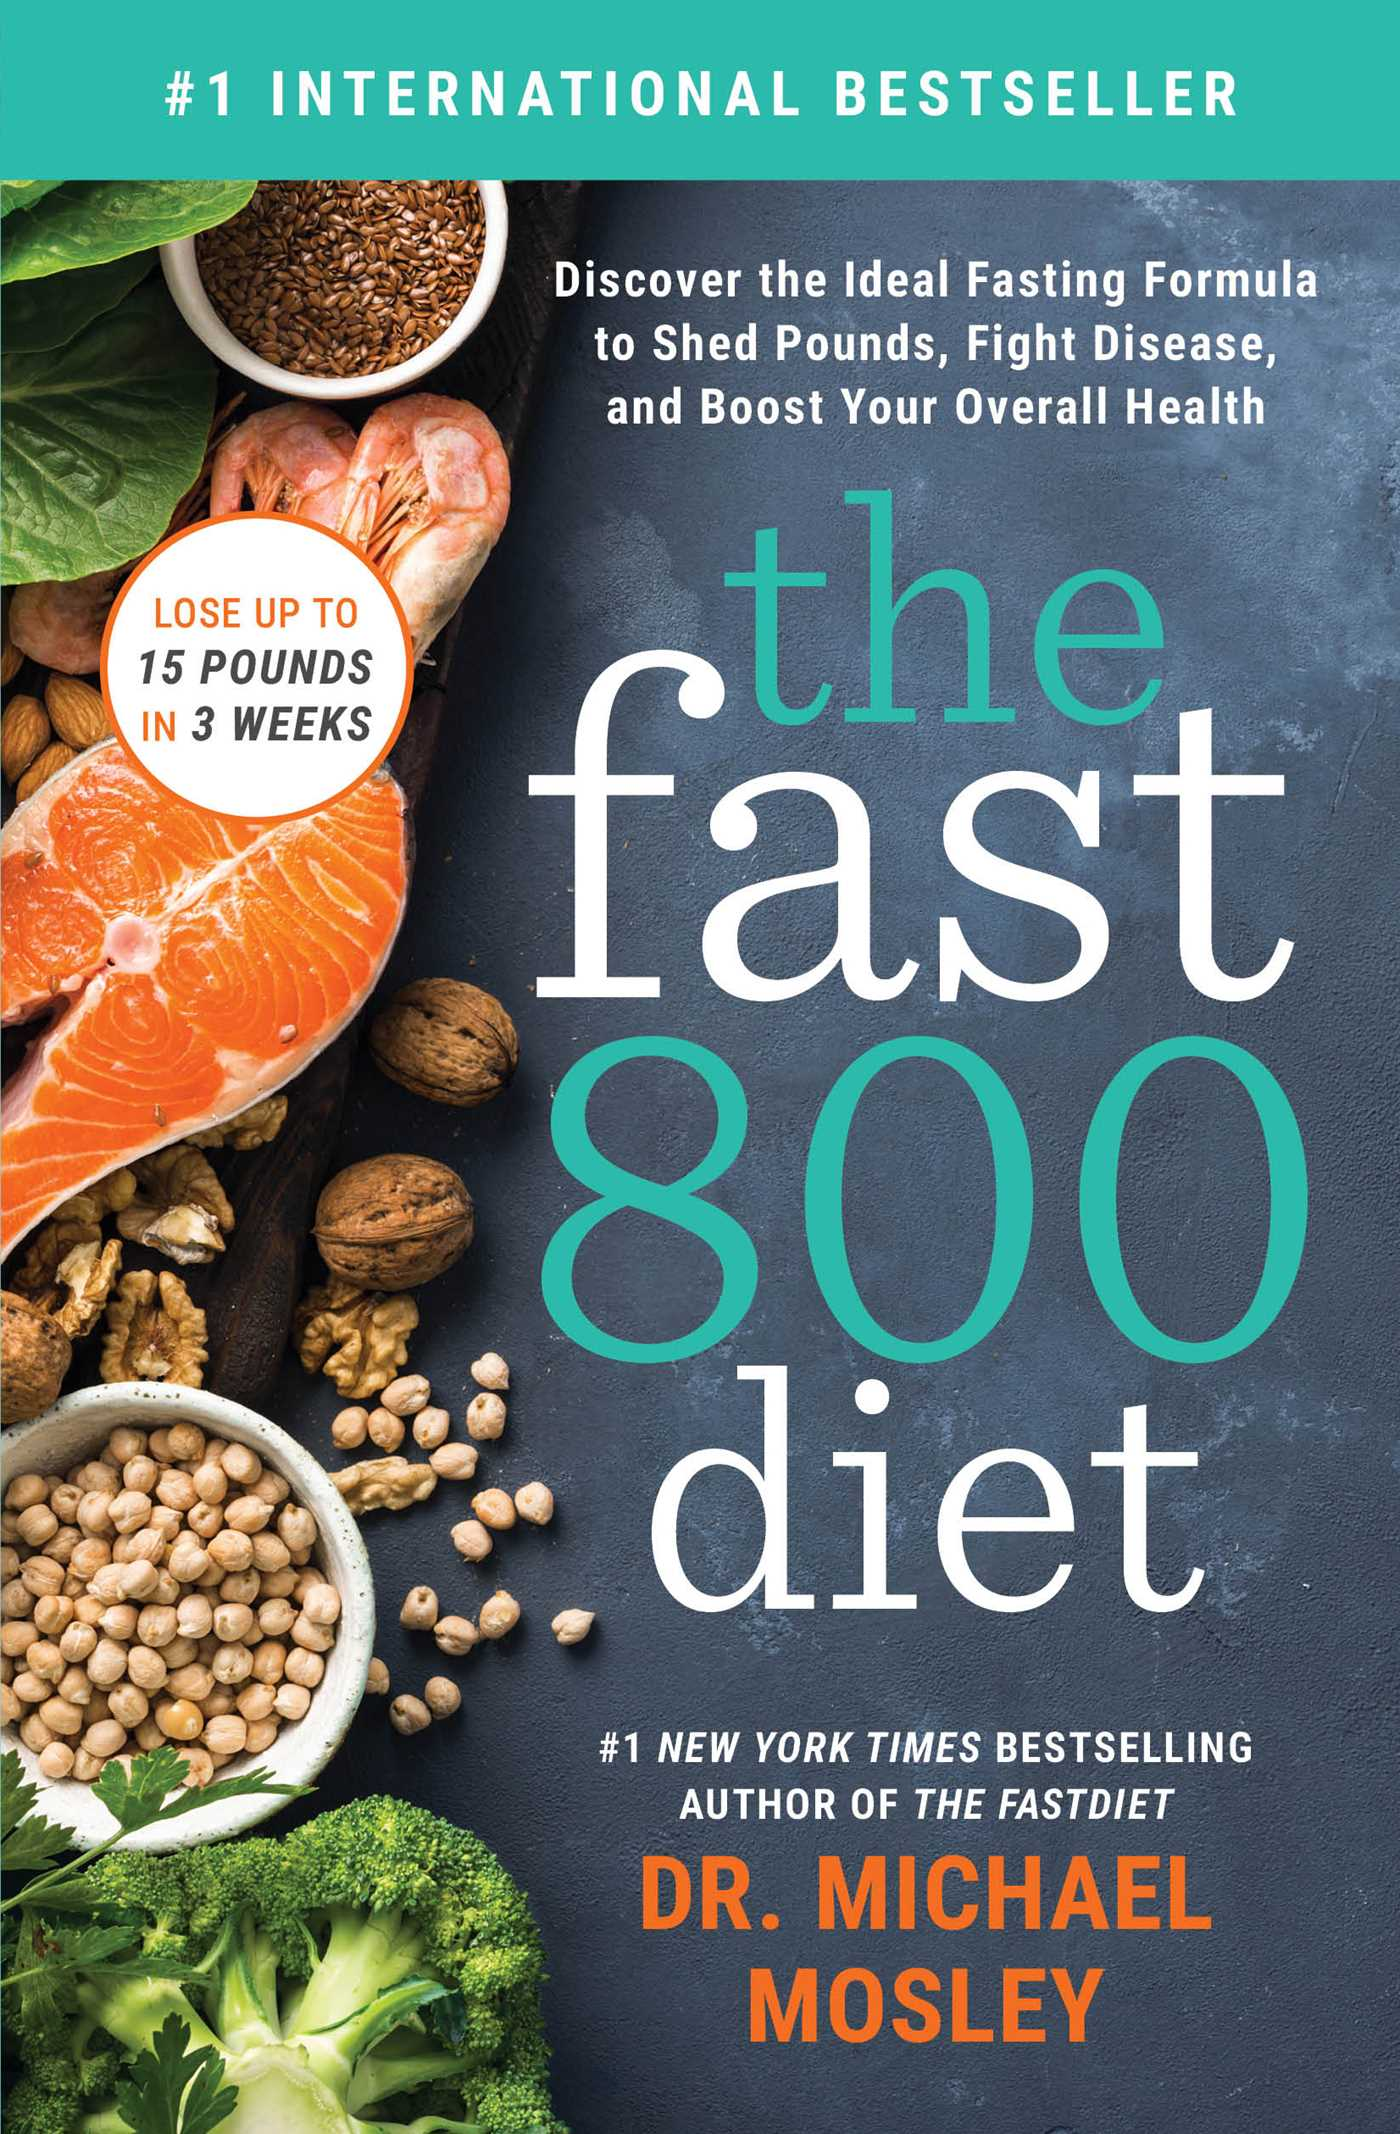 The Fast800 Diet Discover the Ideal Fasting Formula to Shed Pounds, Fight Disease, and Boost Your Overall Health